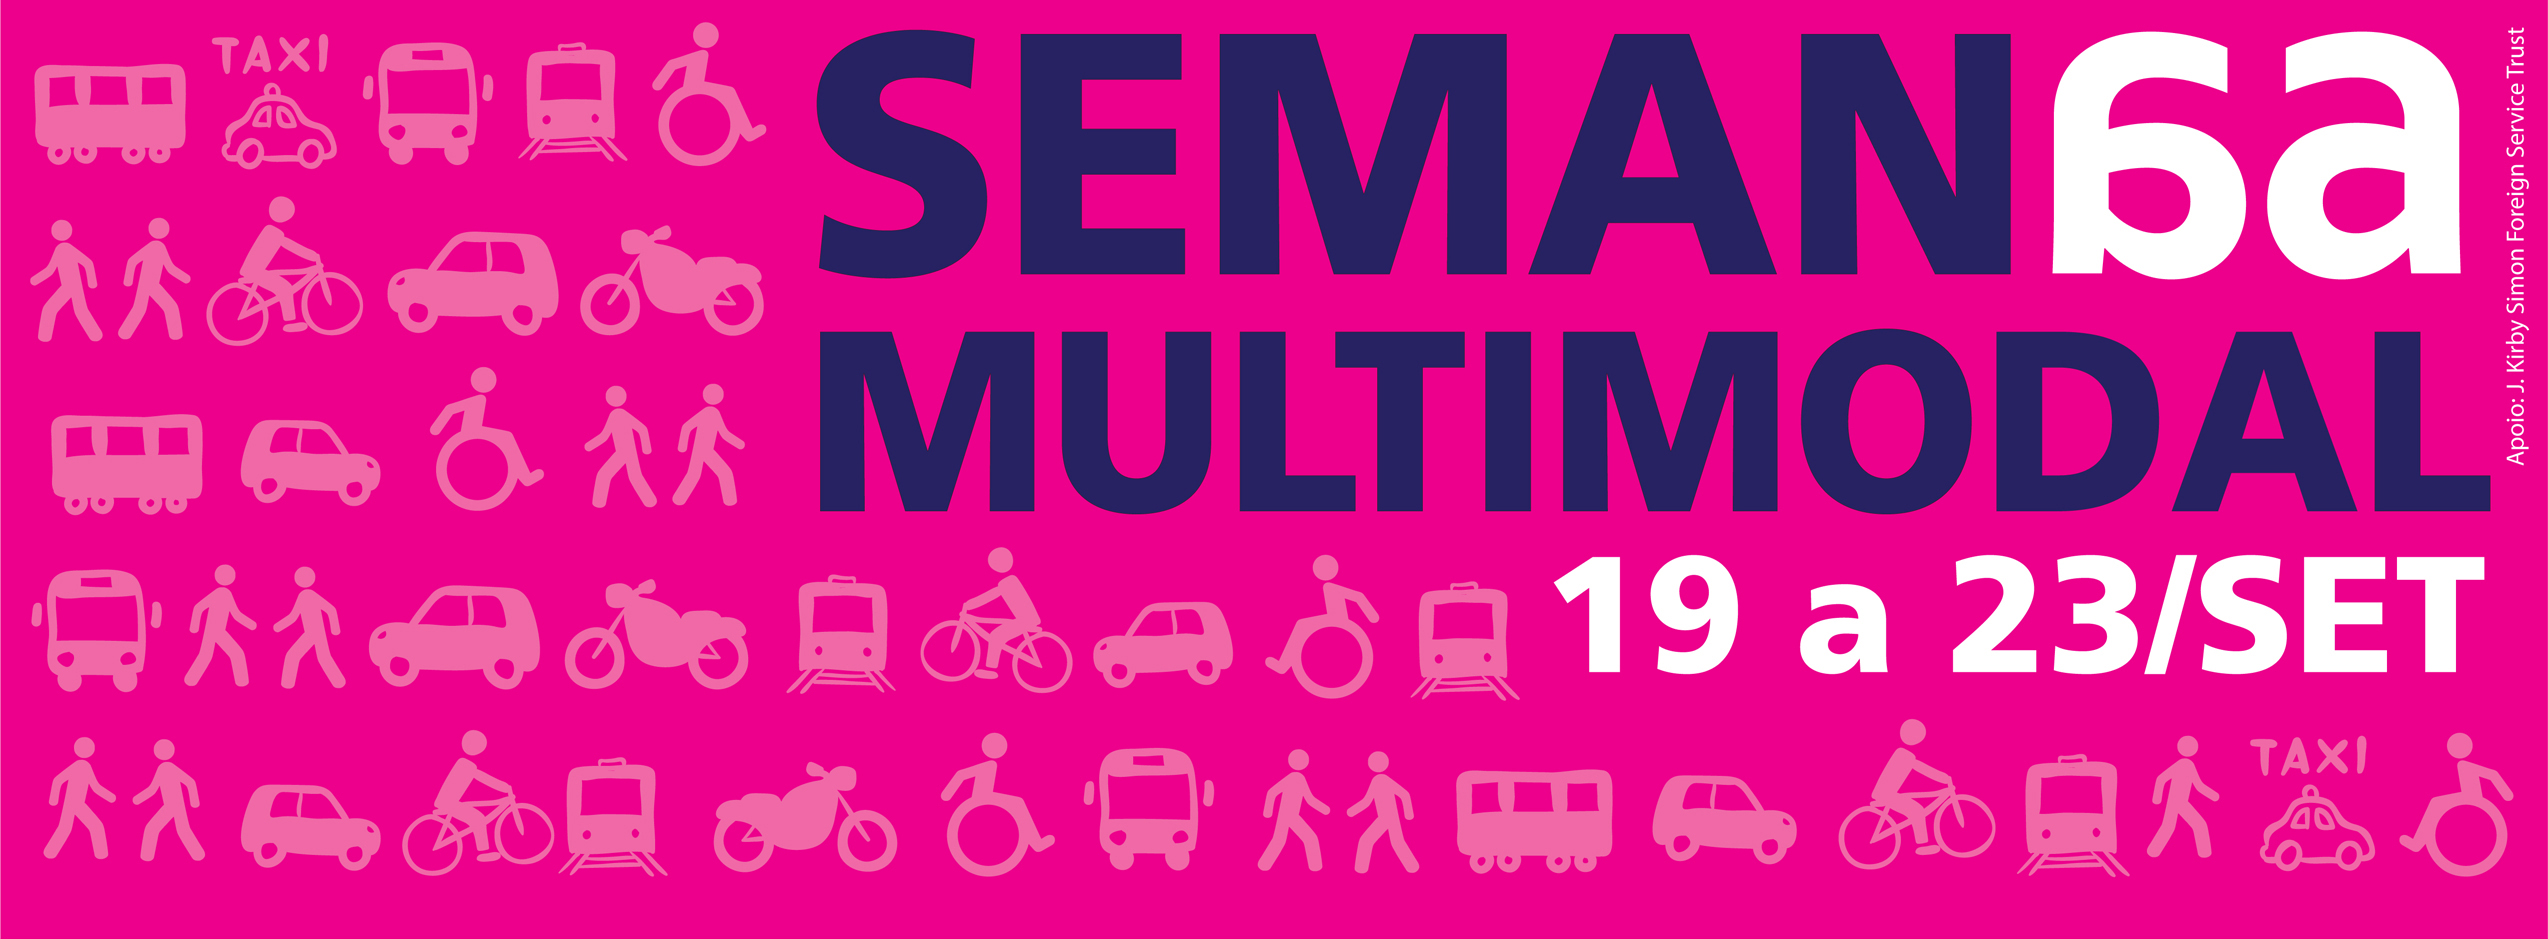 Capa - Semana Multimodal 2016